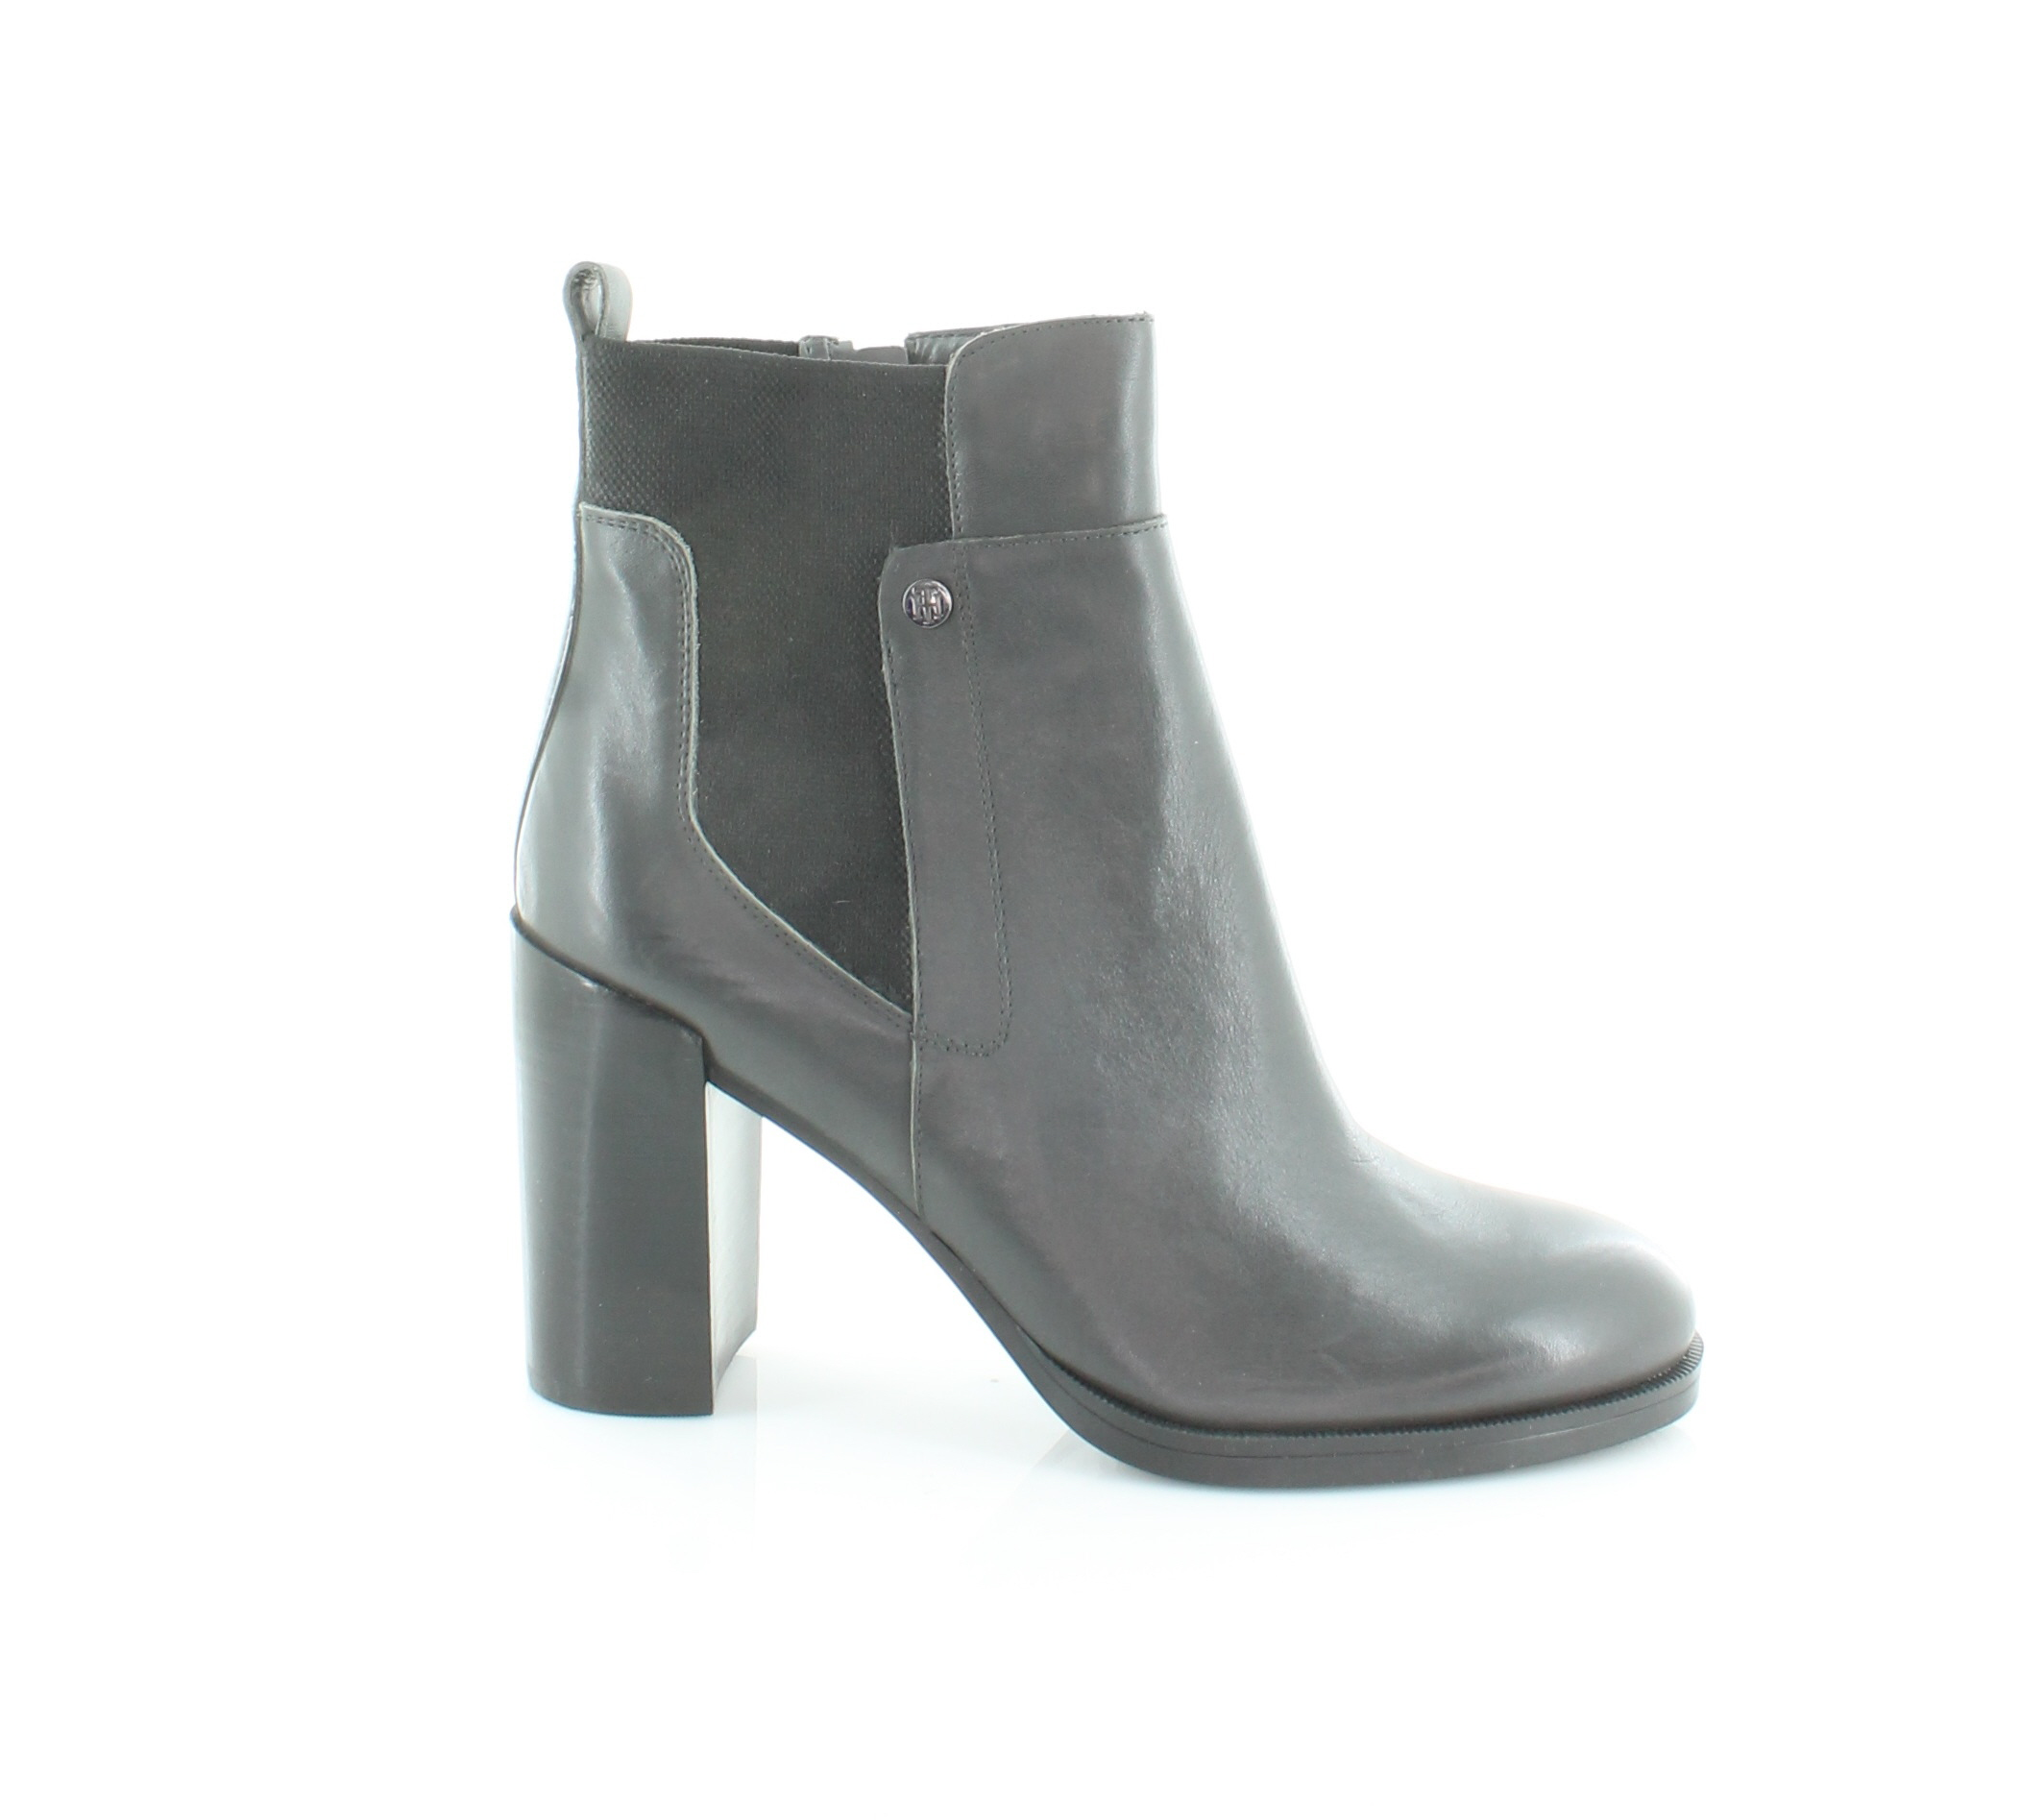 09c7a229 Tommy Hilfiger New Britton Gray Womens Shoes Size 9.5 M Boots MSRP $129